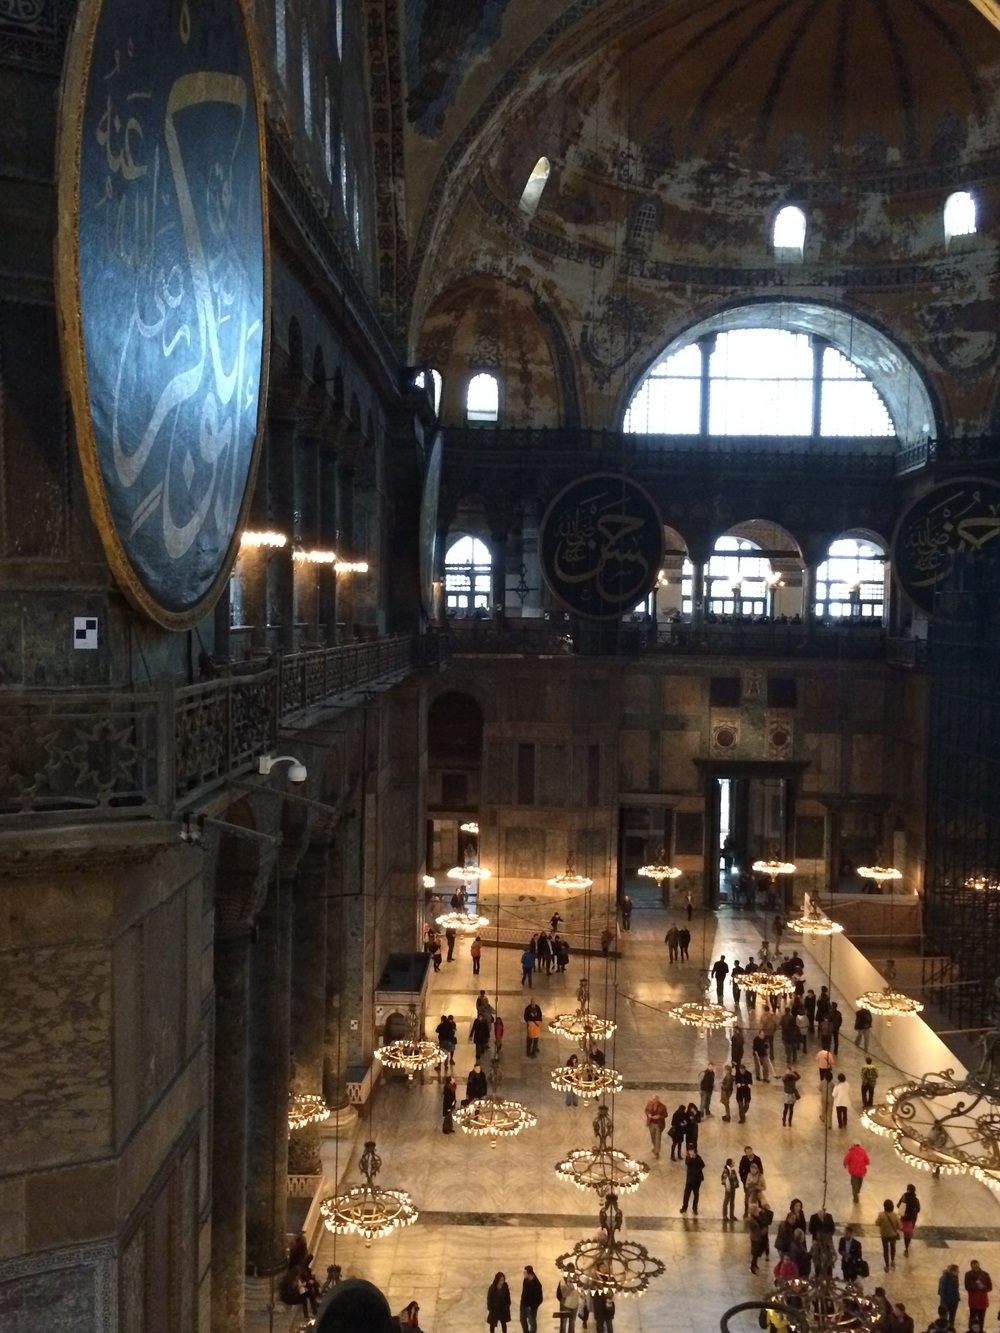 View of the Hagia Sophia from the second story facing away from themihrab(altar).